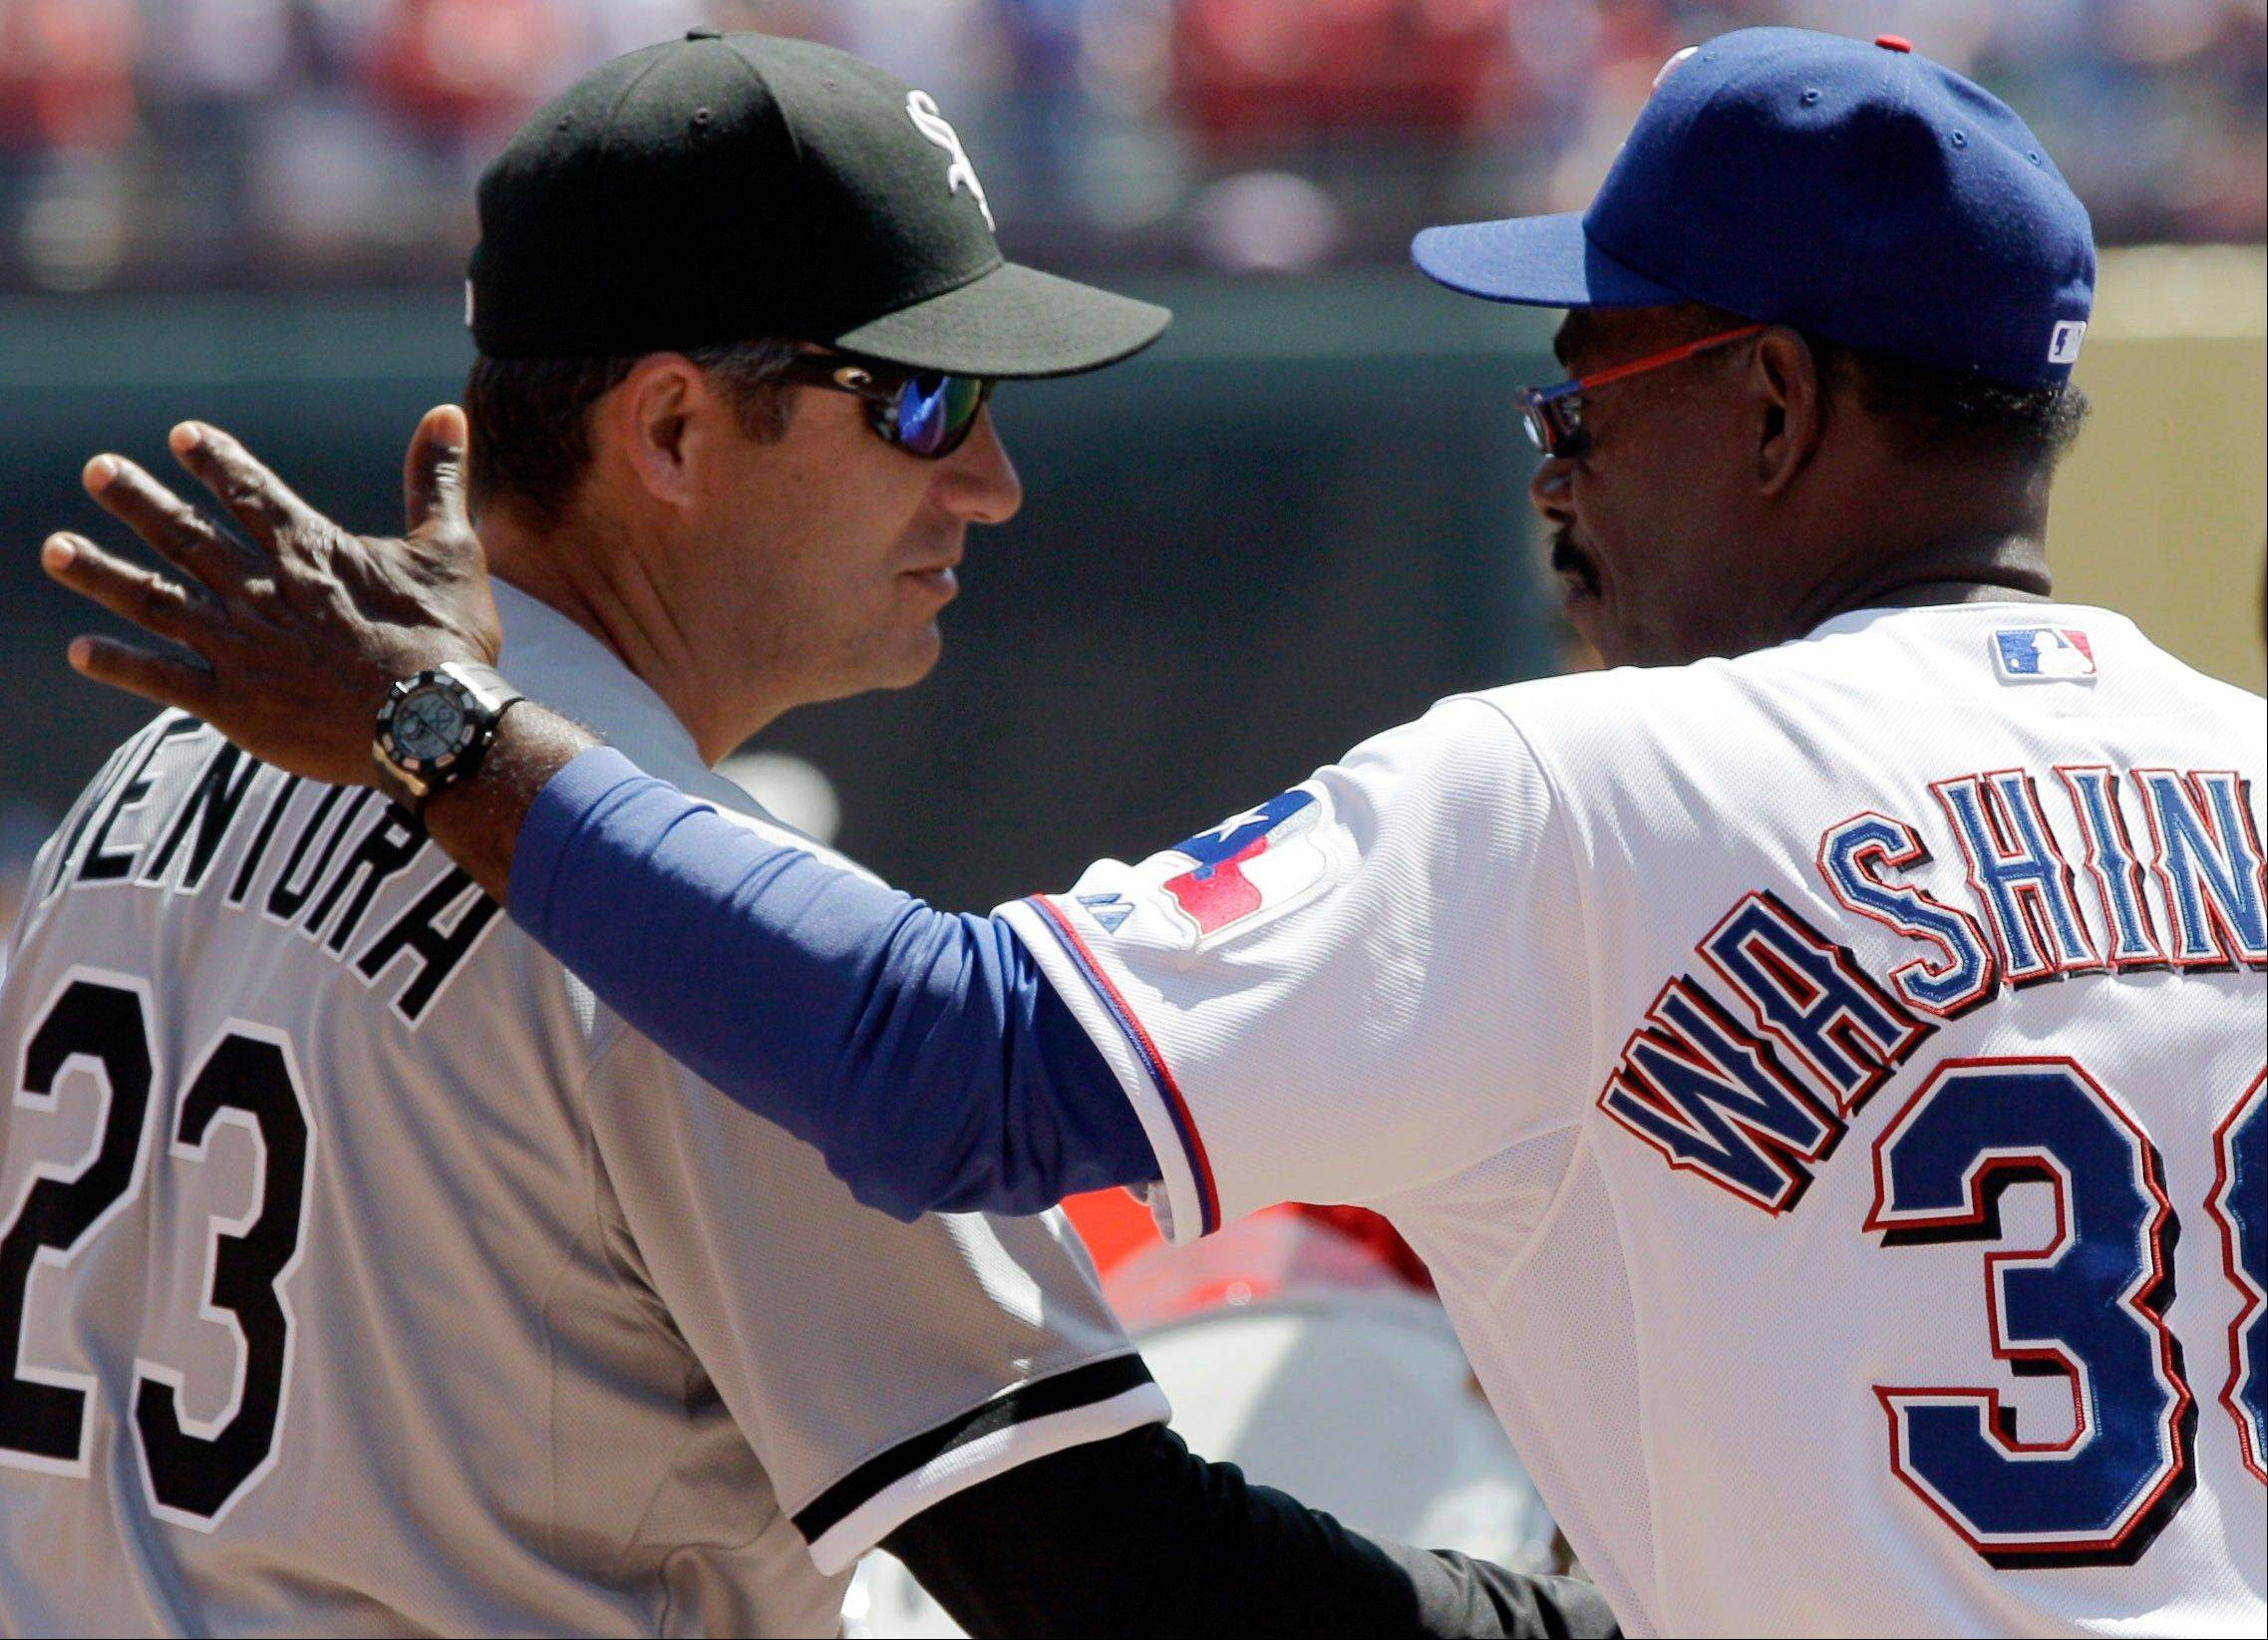 Chicago White Sox manager Robin Ventura (23) and Texas Rangers manager Ron Washington (38) greet before a baseball game Friday, April 6, 2012 in Arlington, Texas.